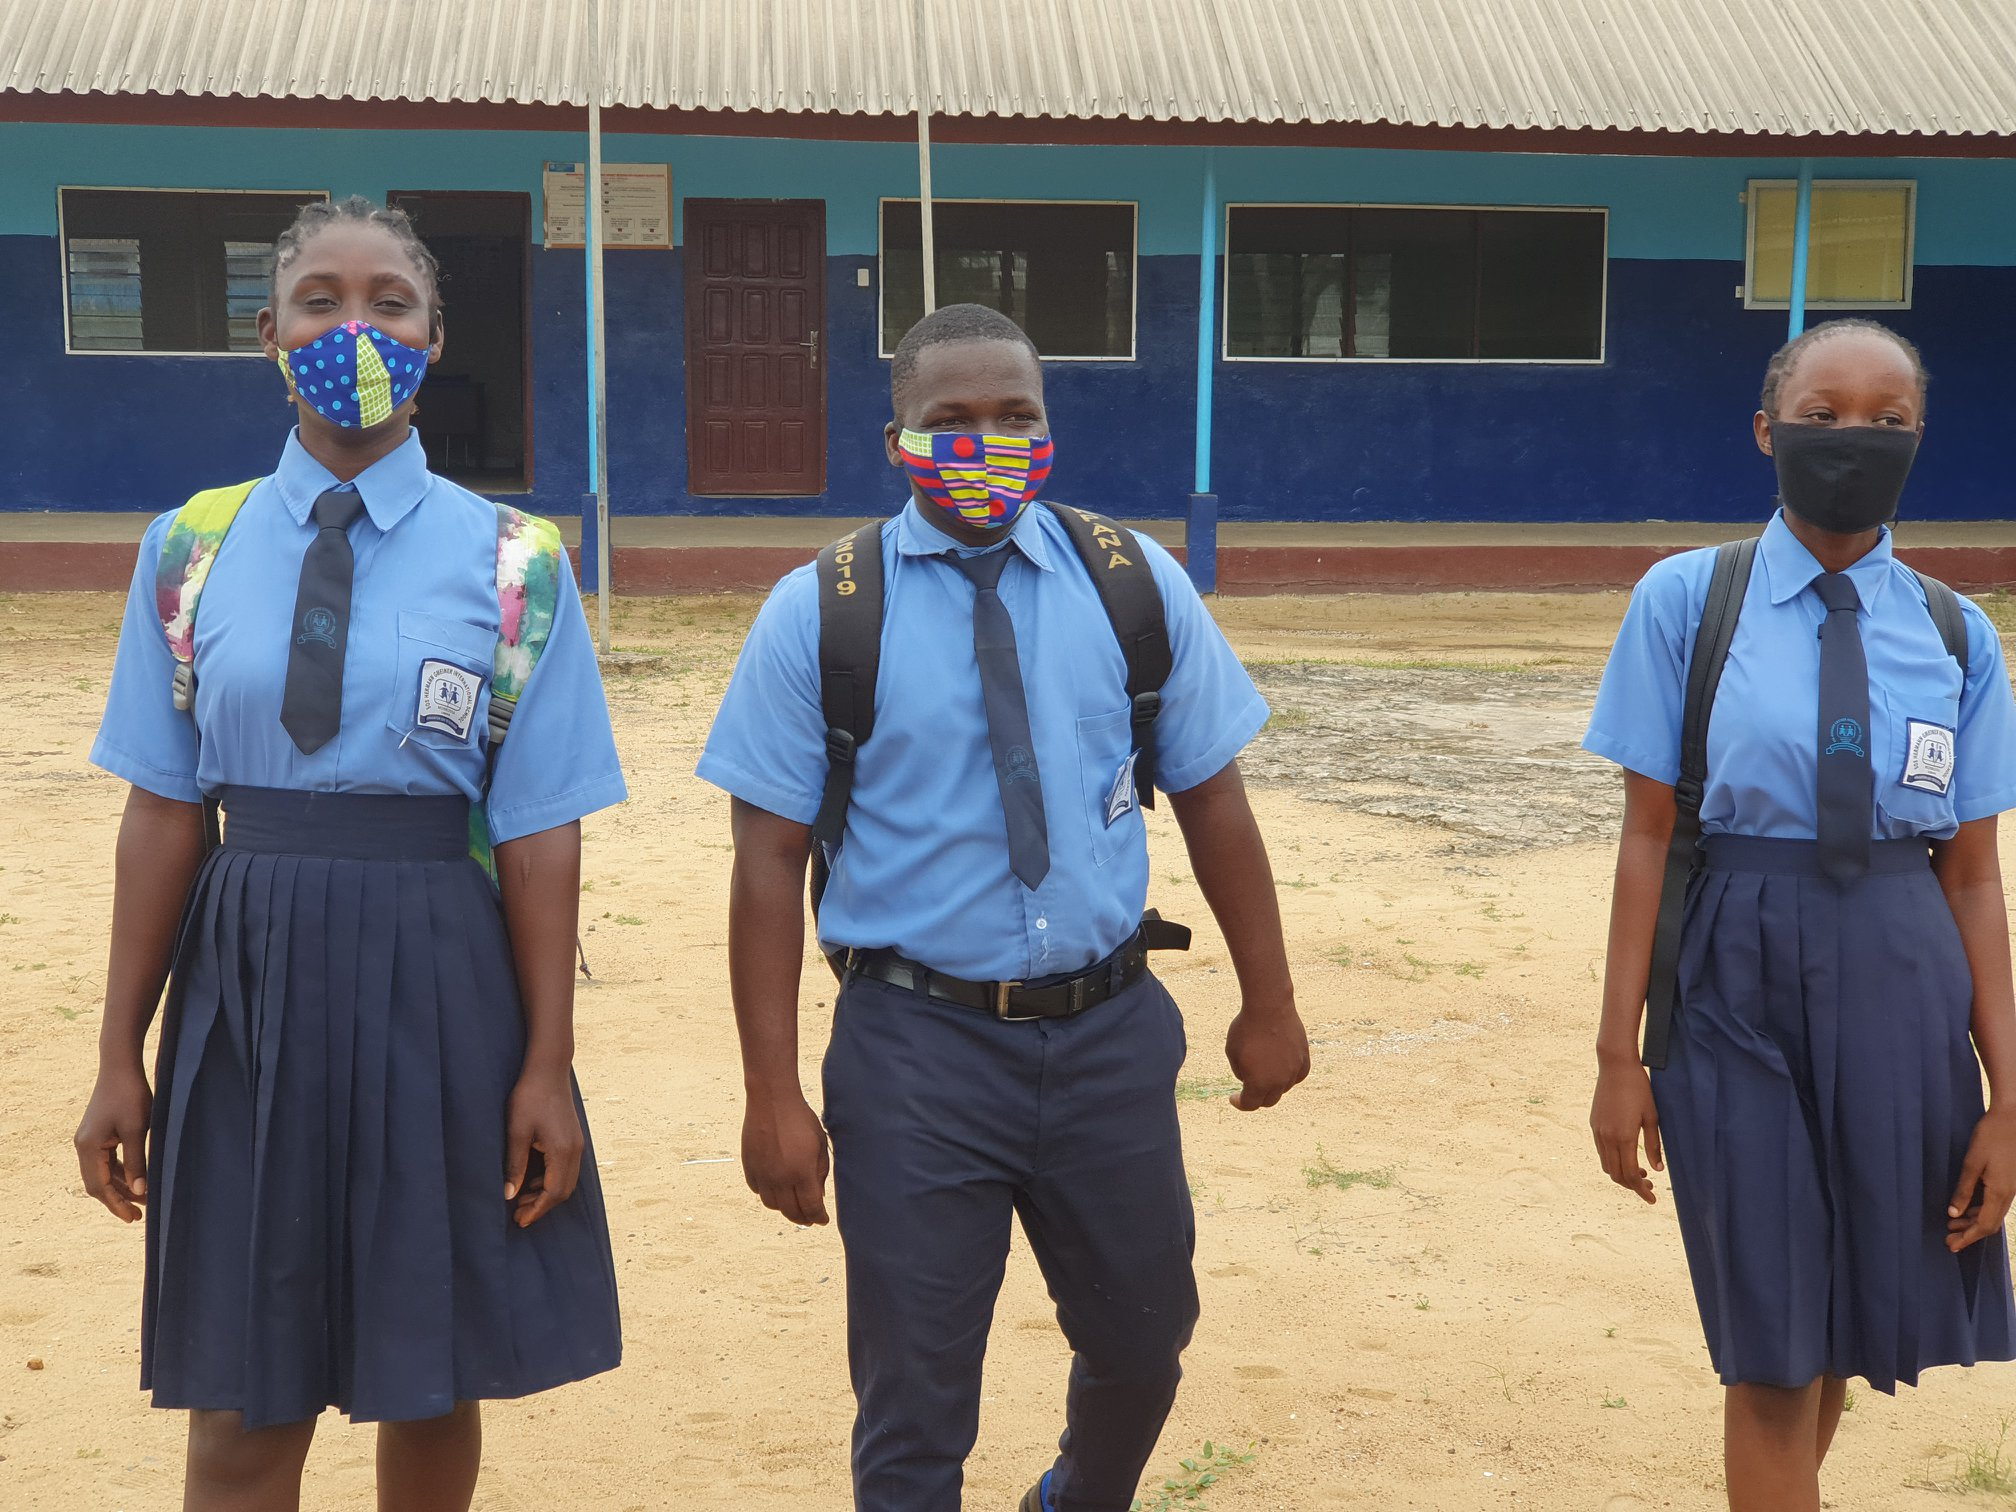 As 12th Graders return to school after 4 months of school closure due to Coronavirus, SOS Children's Villages Liberia tightens COVID-19 preventive measures